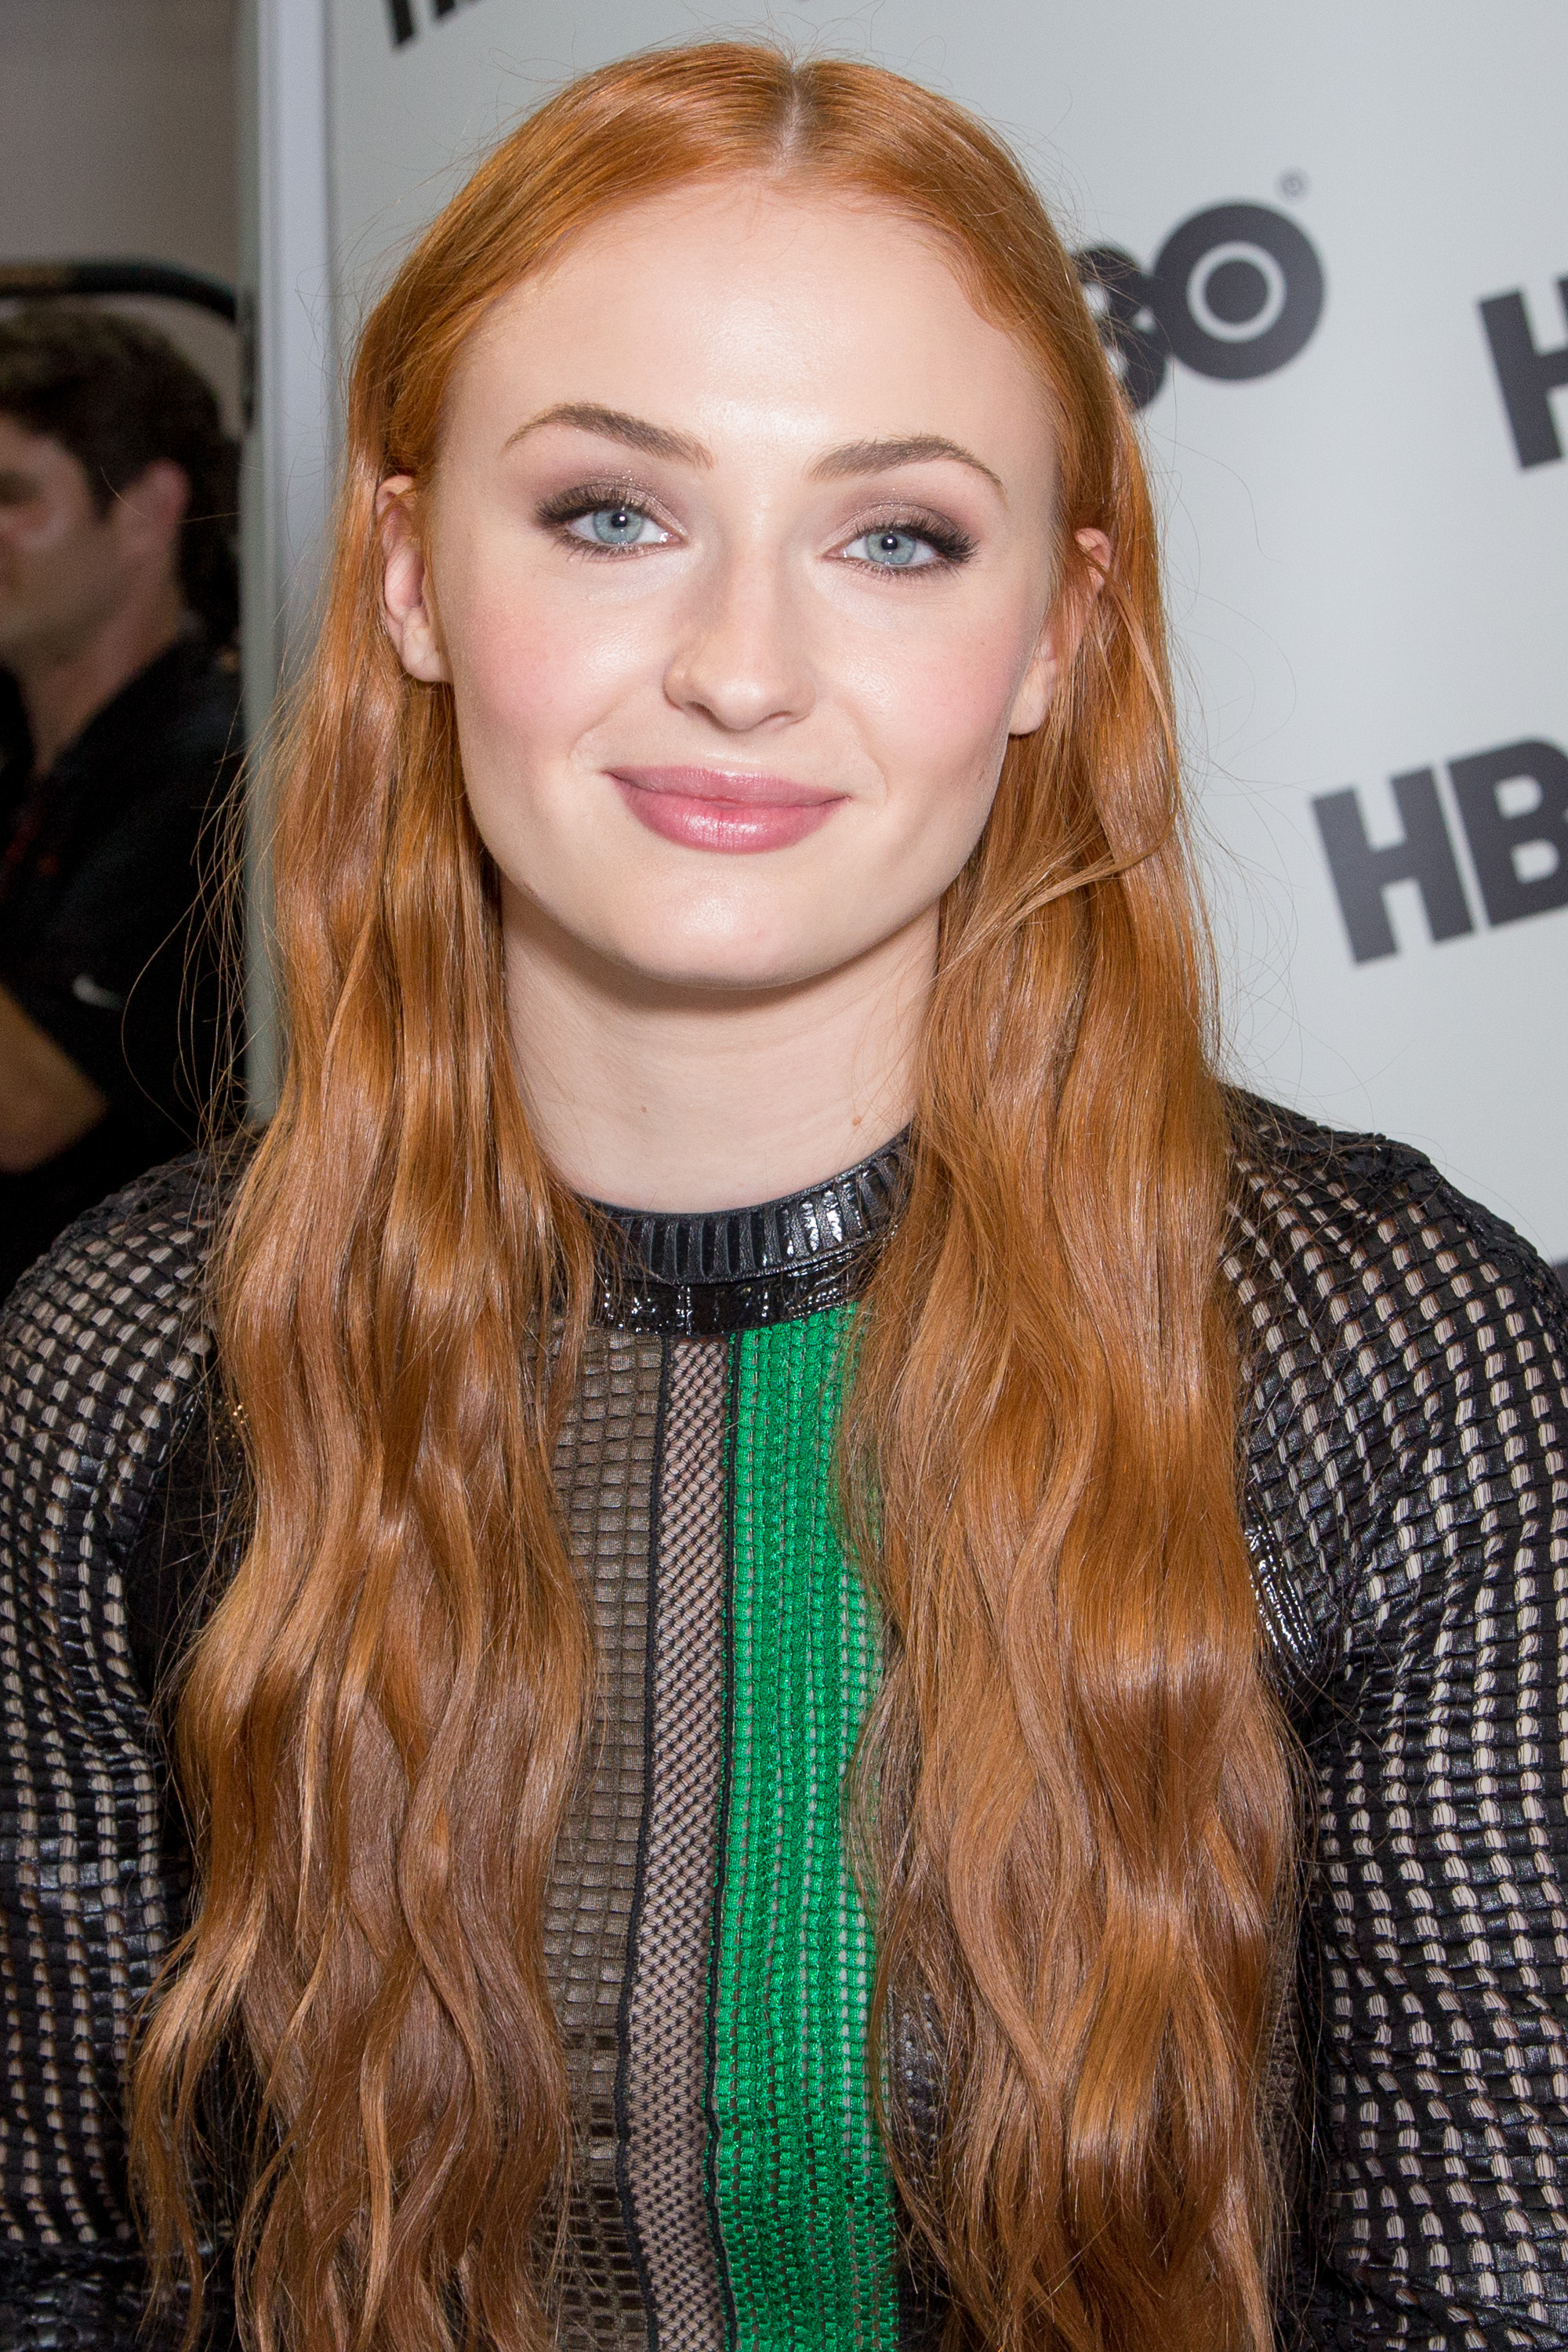 Actress Sophie Turner attends a fan signing for 'Game of Thrones' during Comic-Con International on July 10, 2015 in San Diego, California.